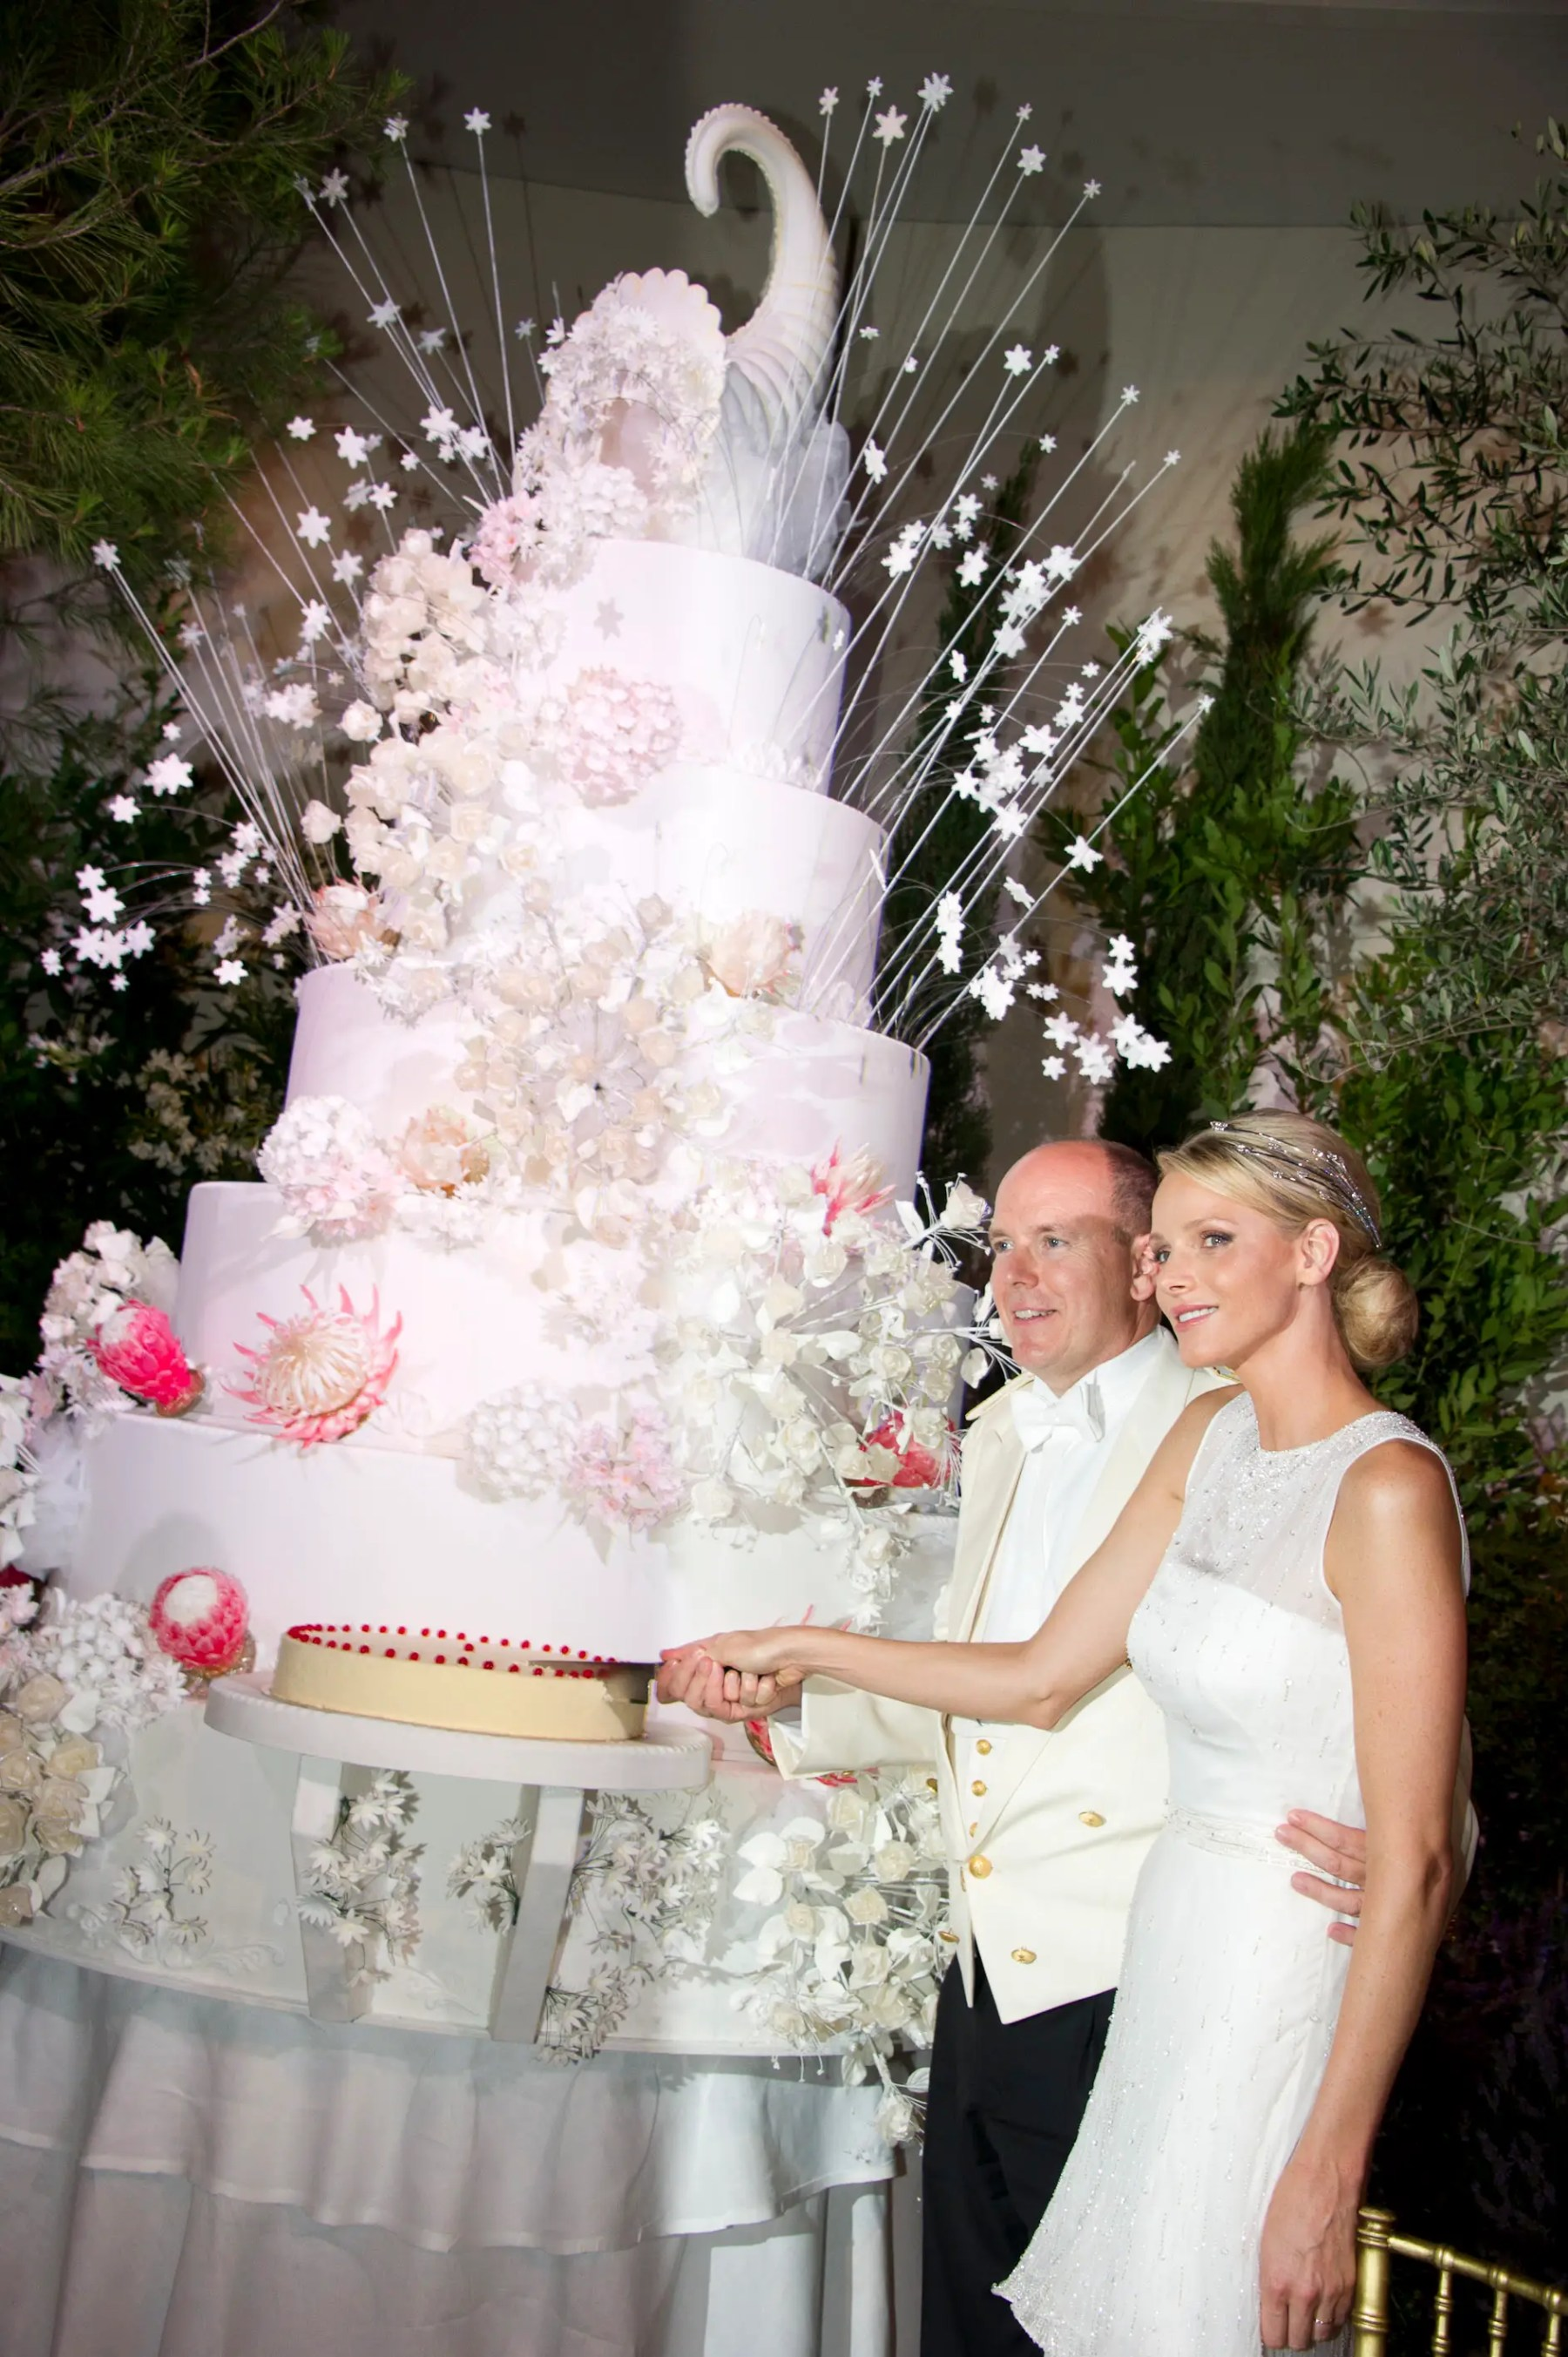 Prince Albert II and Princess Charlene of Monaco's cake was topped with a cornucopia, flowers, and an explosion of stars.